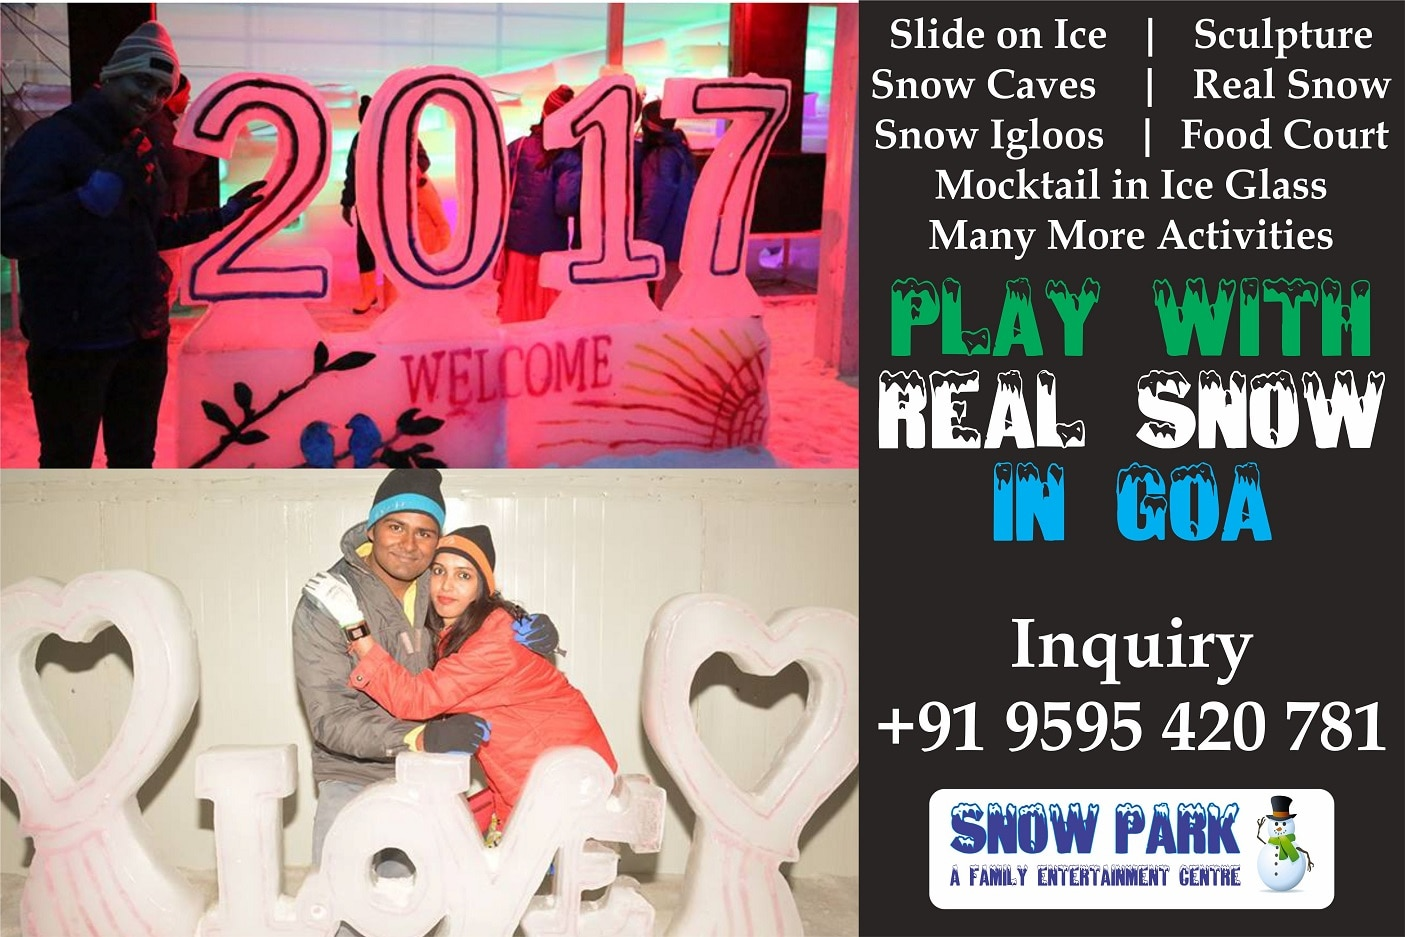 Make unforgettable Memories When You Are at Snow Park Goa.